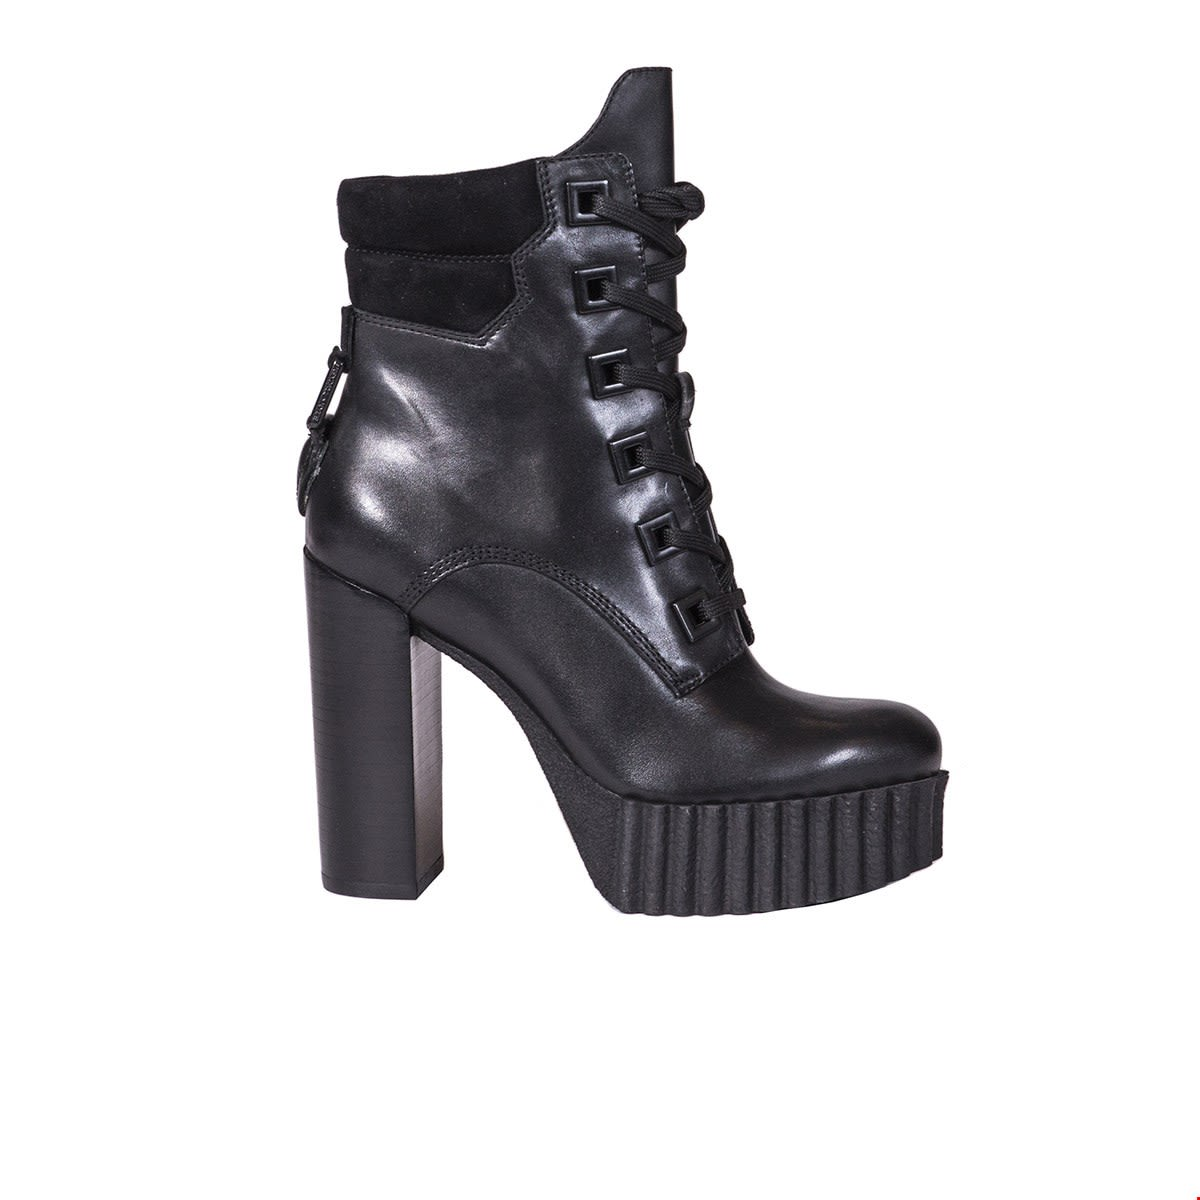 Coty Boots